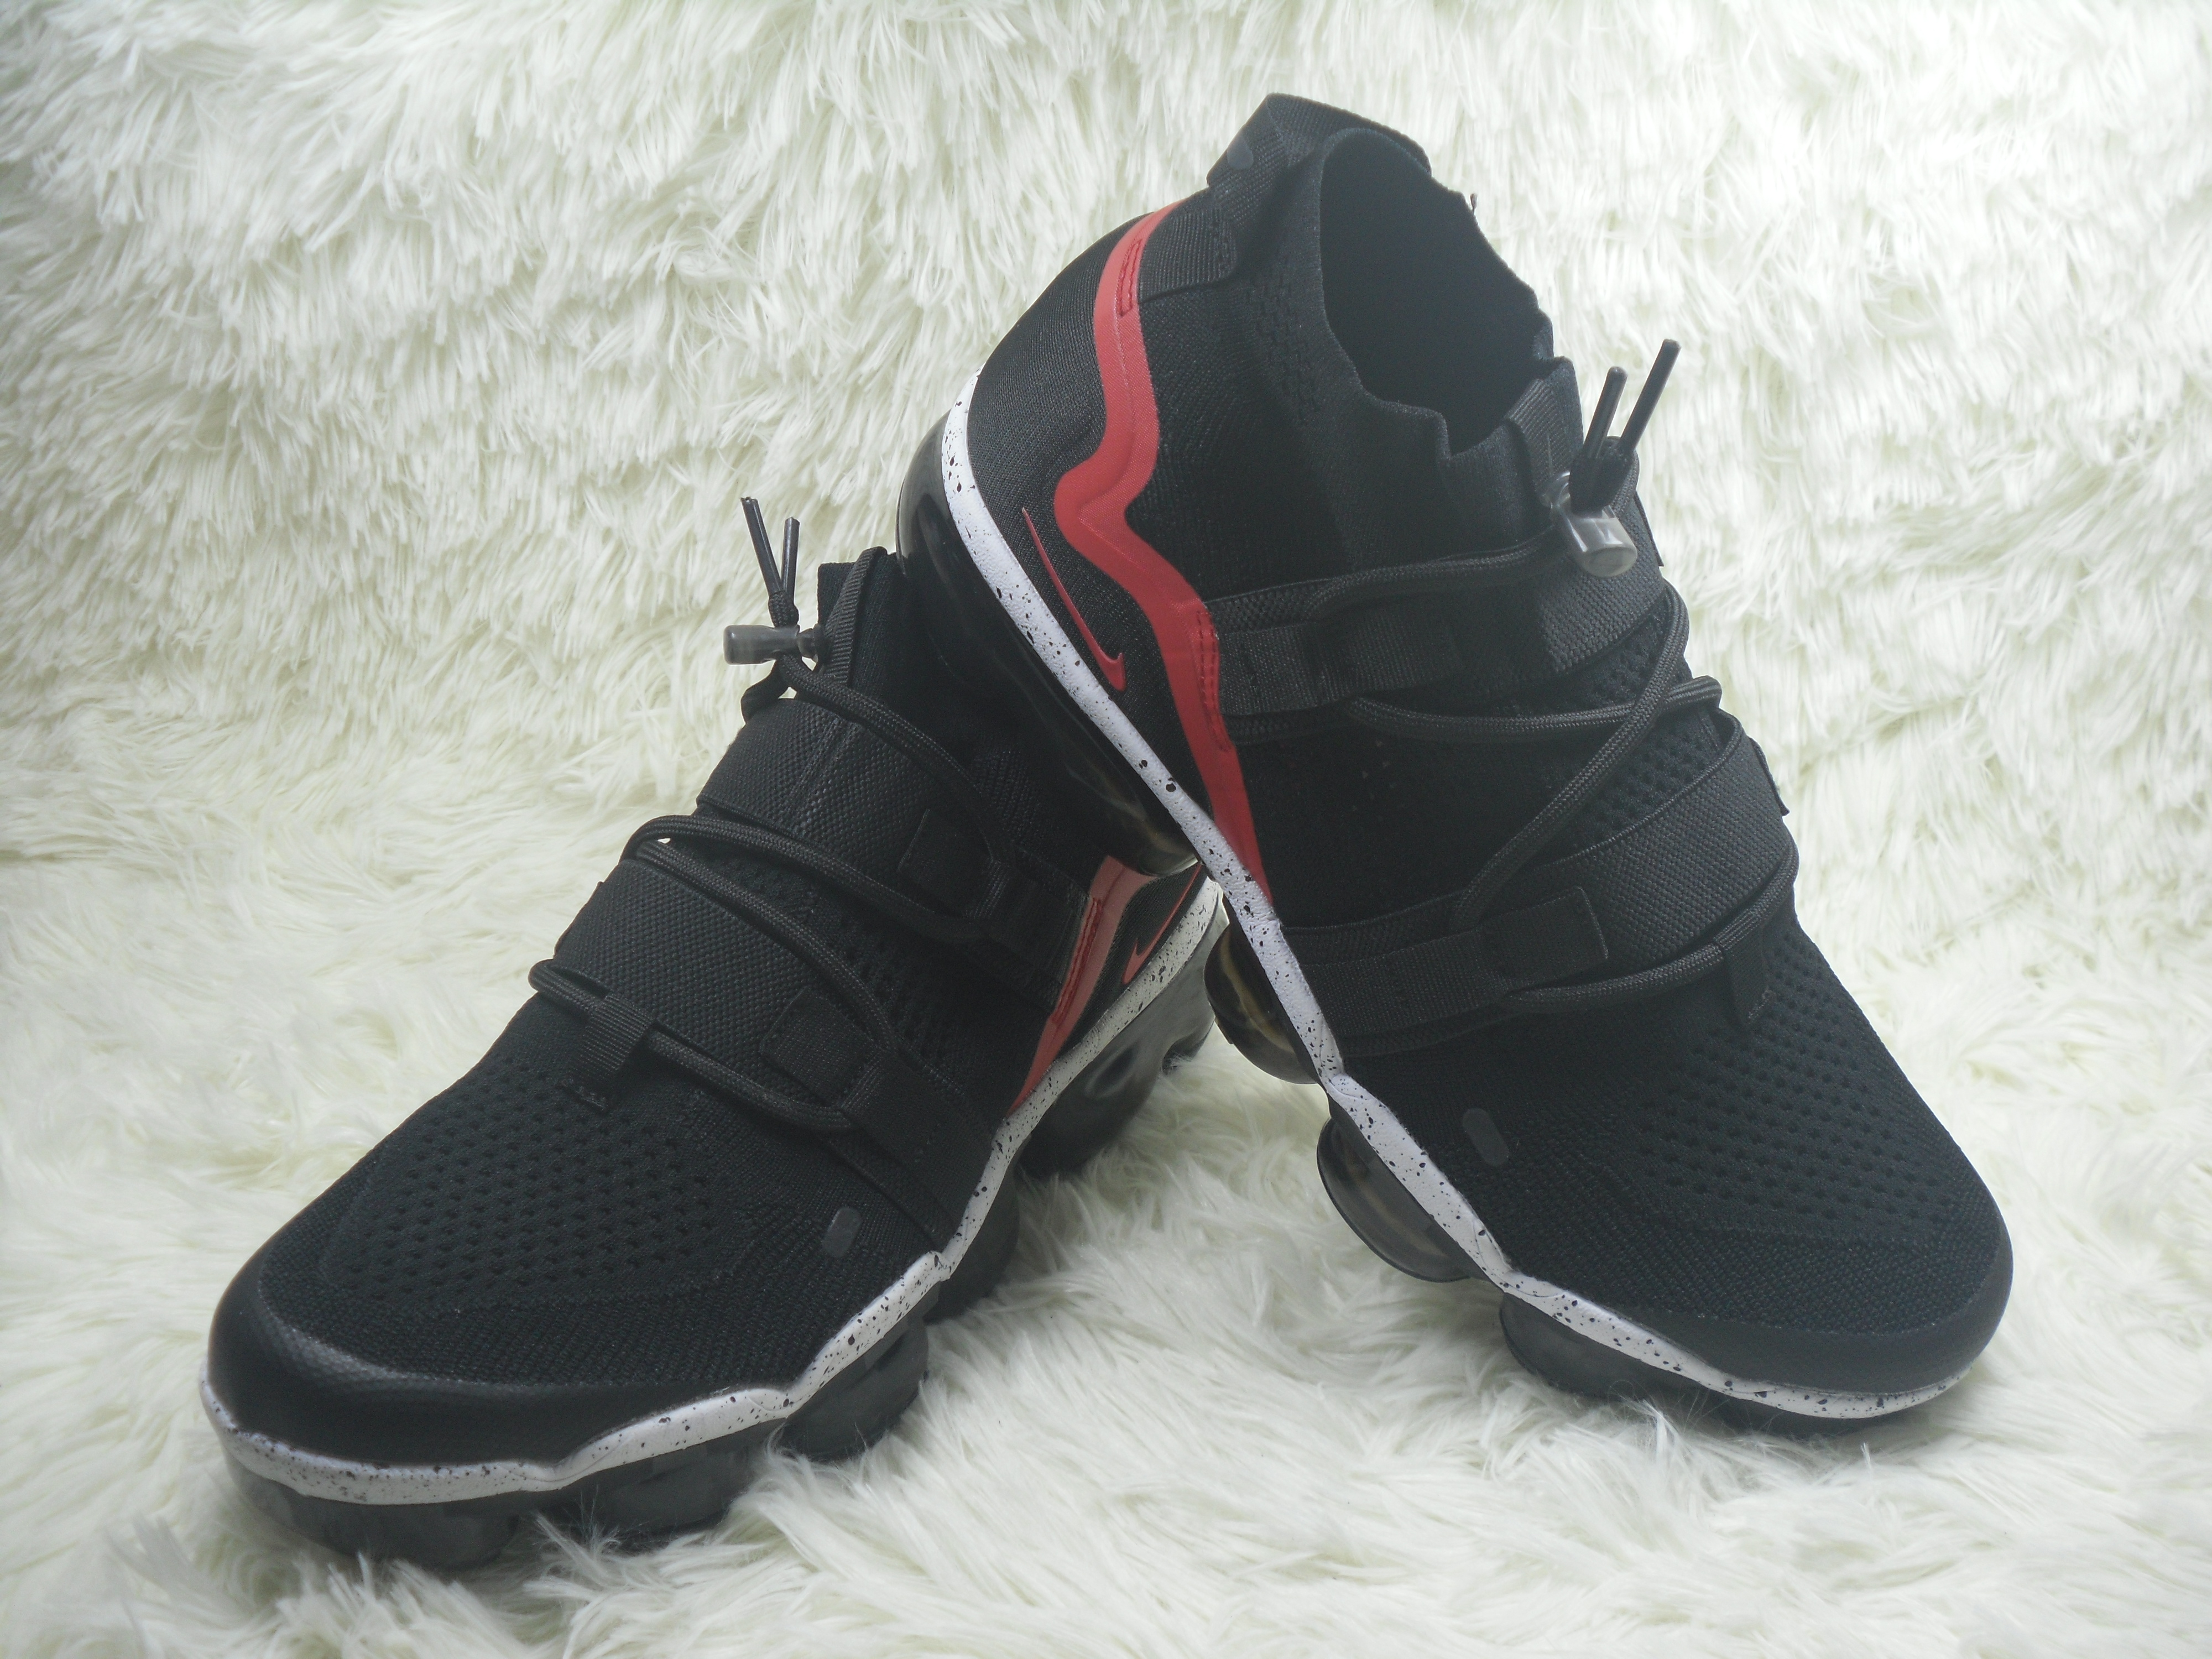 Nike Air VaporMax FK Utility Black Red Shoes